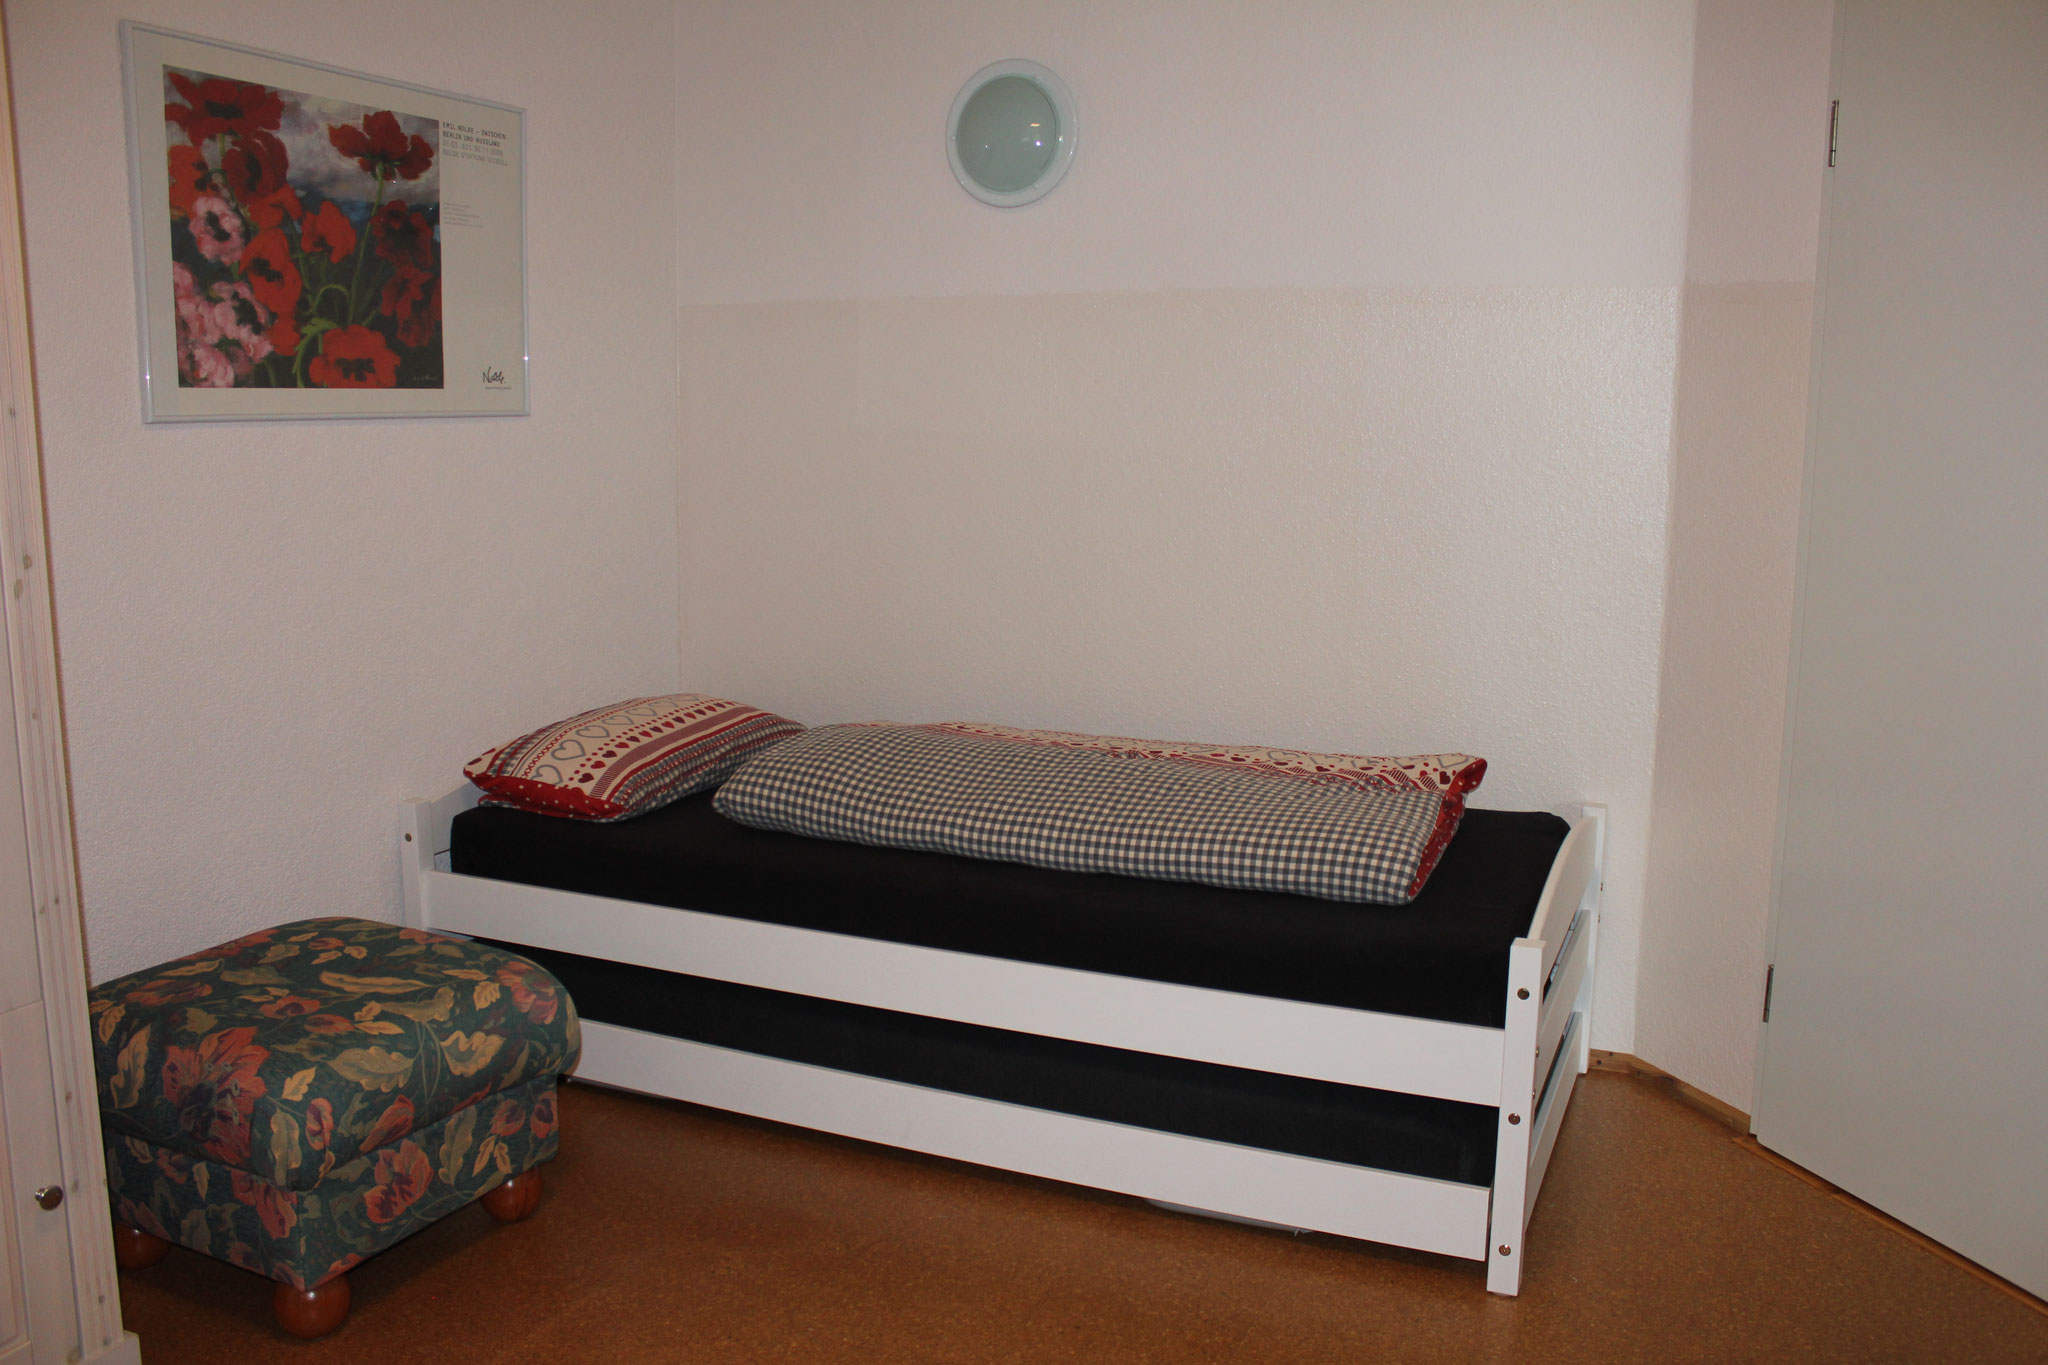 Einzelbett/ Single bed (200 x 90 cm)